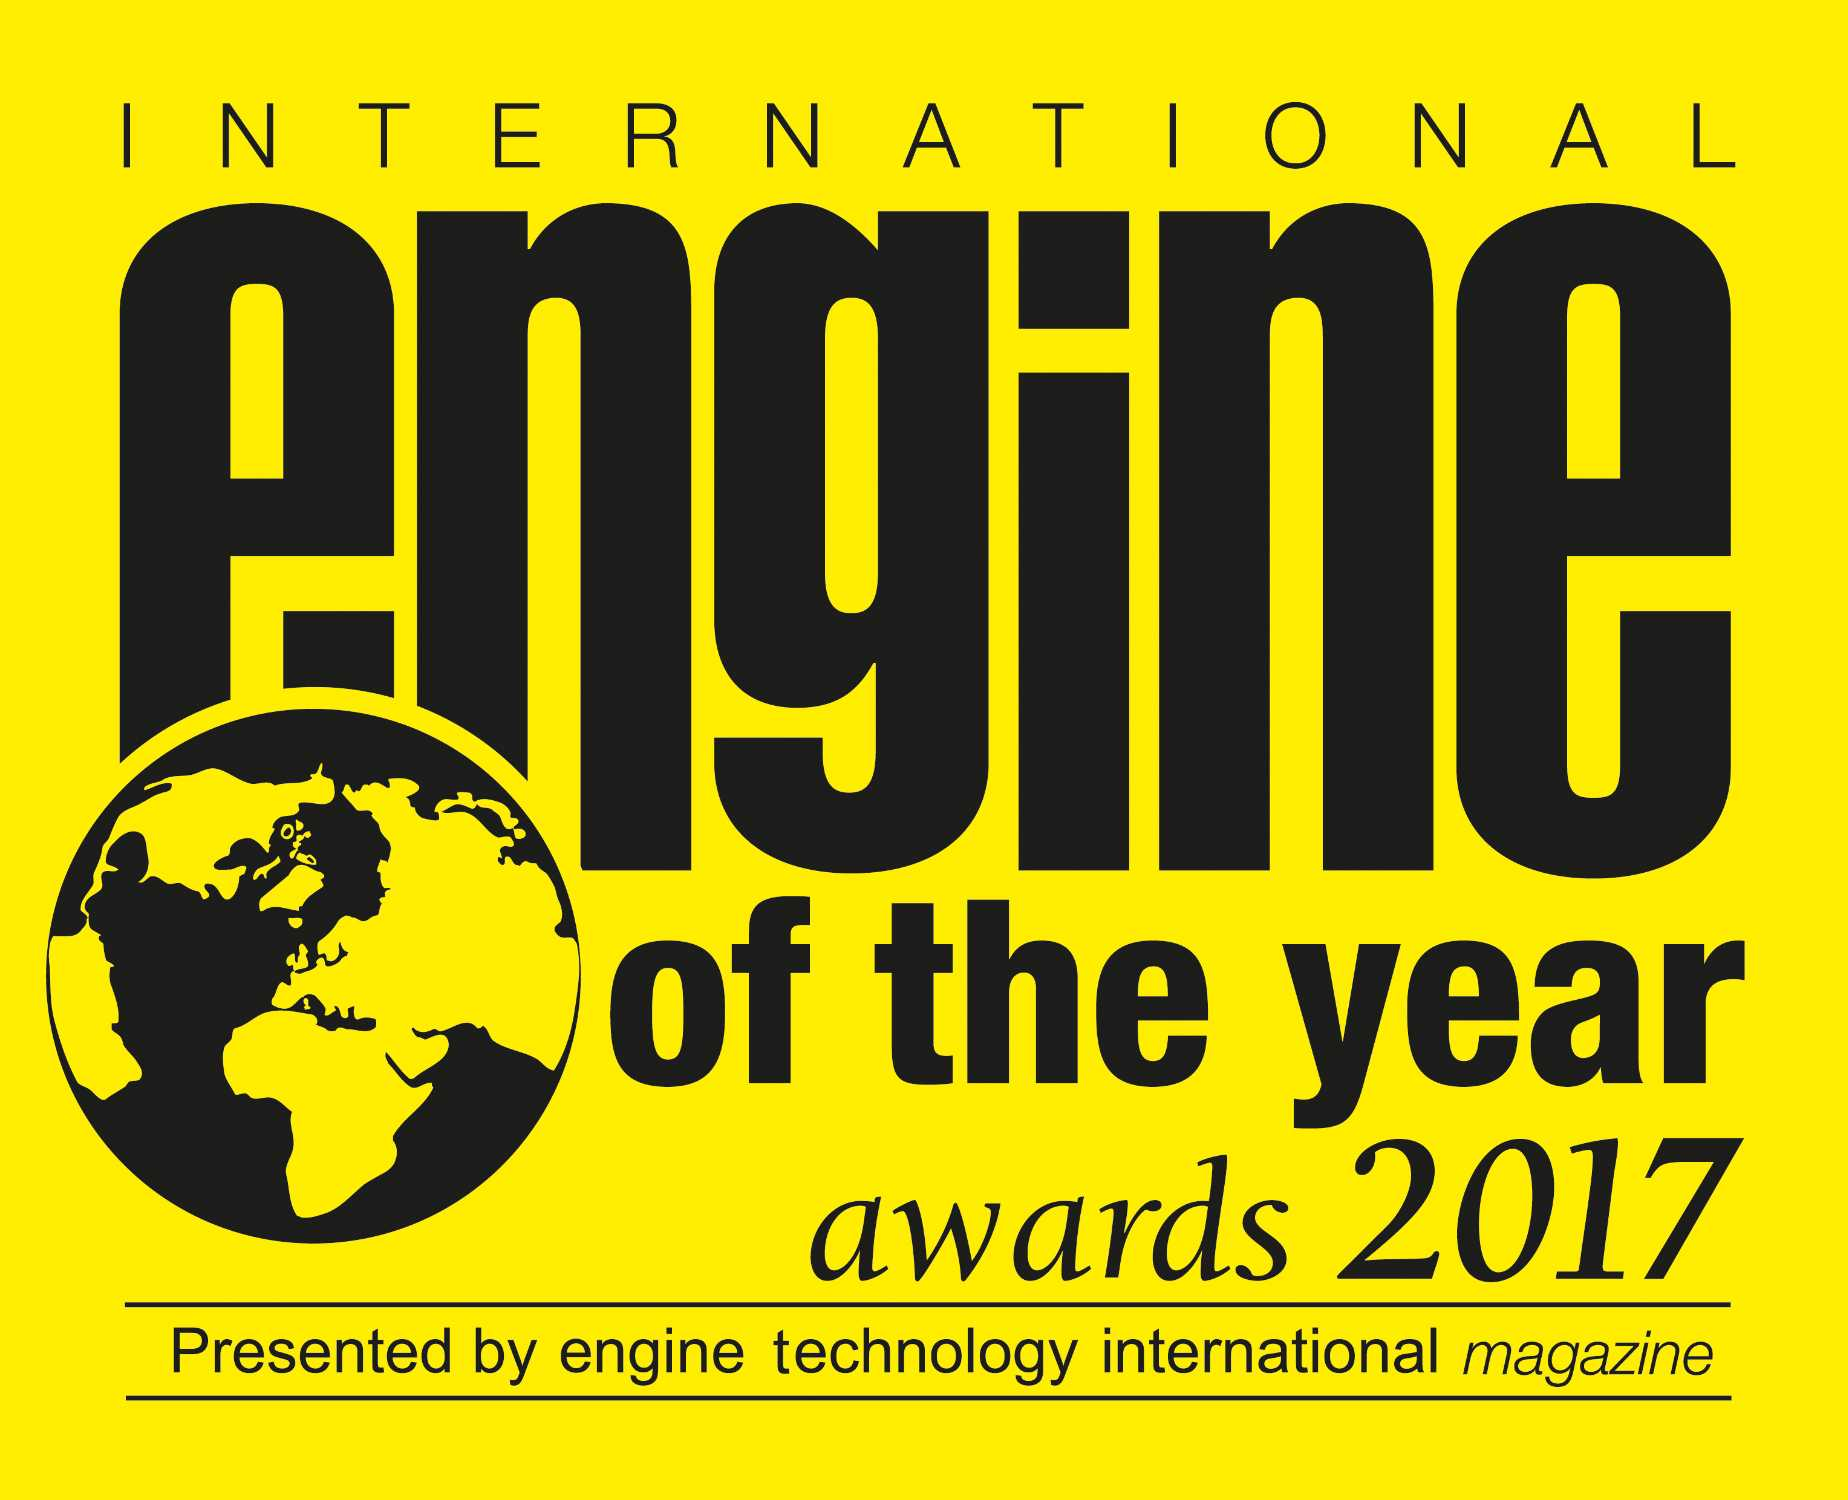 BMW i once again wins International Engine of the Year Award.